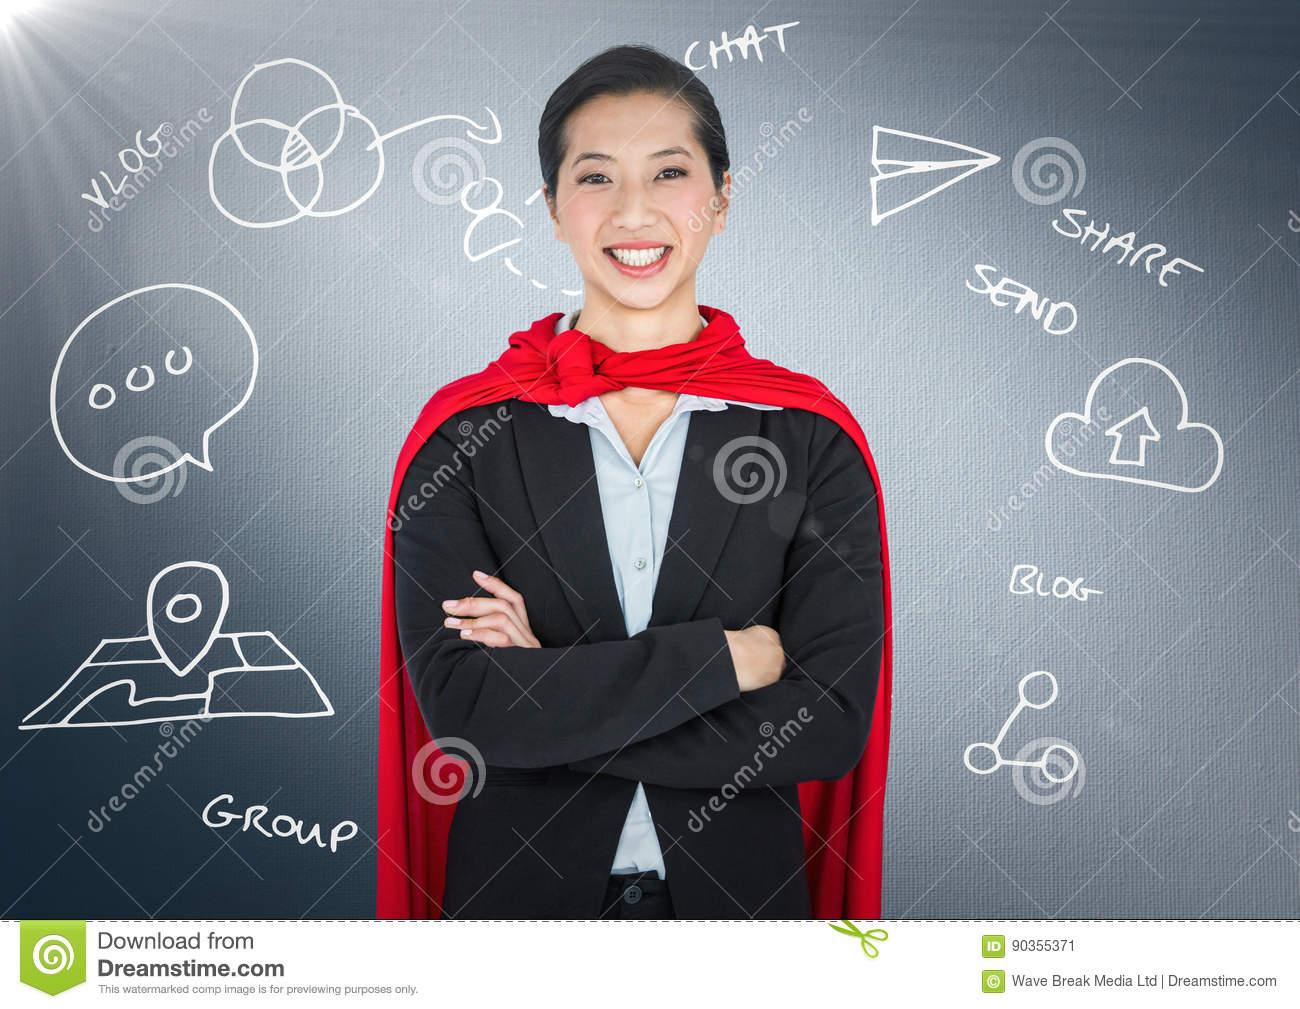 Business woman superhero with arms folded against navy background with white business doodles and fl